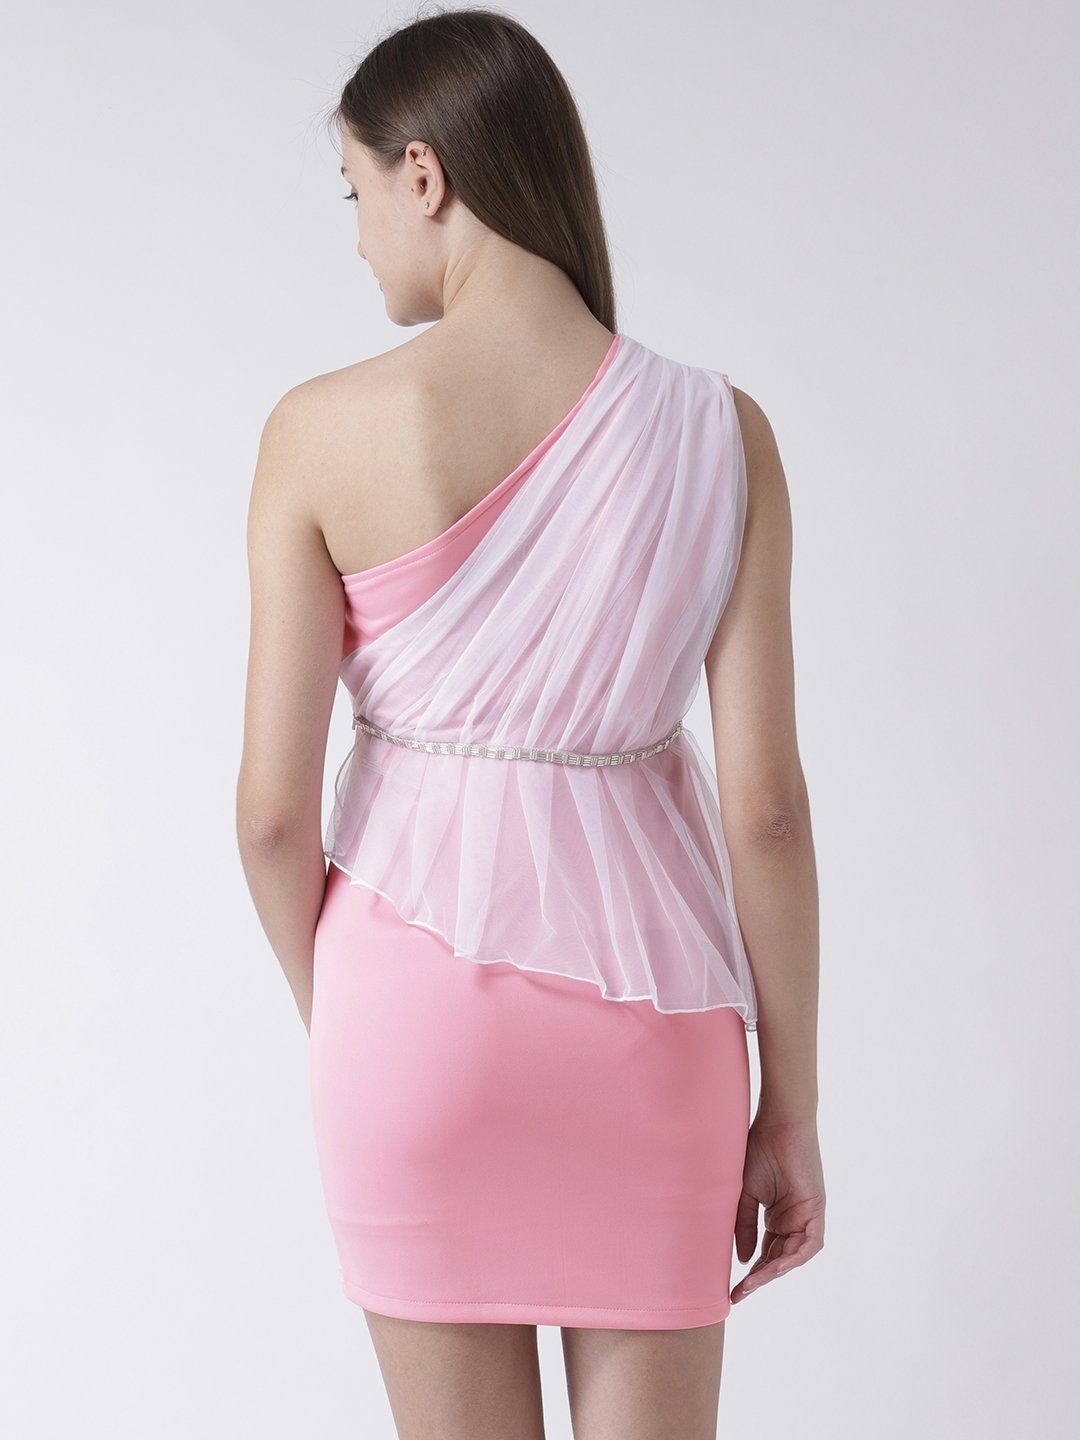 Pastel Pink One Shoulder Dress with Net detail